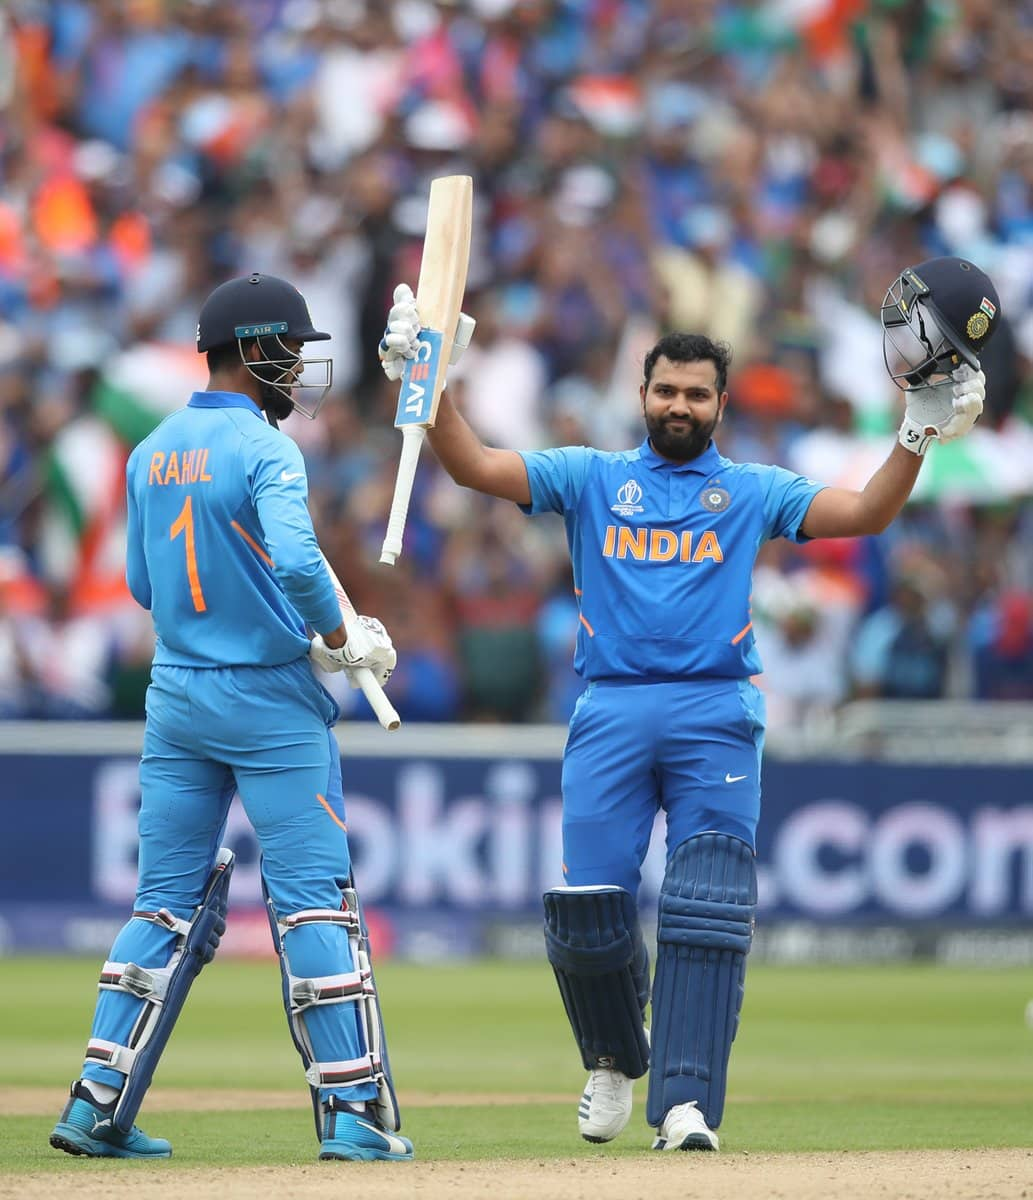 World Cup 2019: India qualify for semi-finals with narrow win over Bangladesh